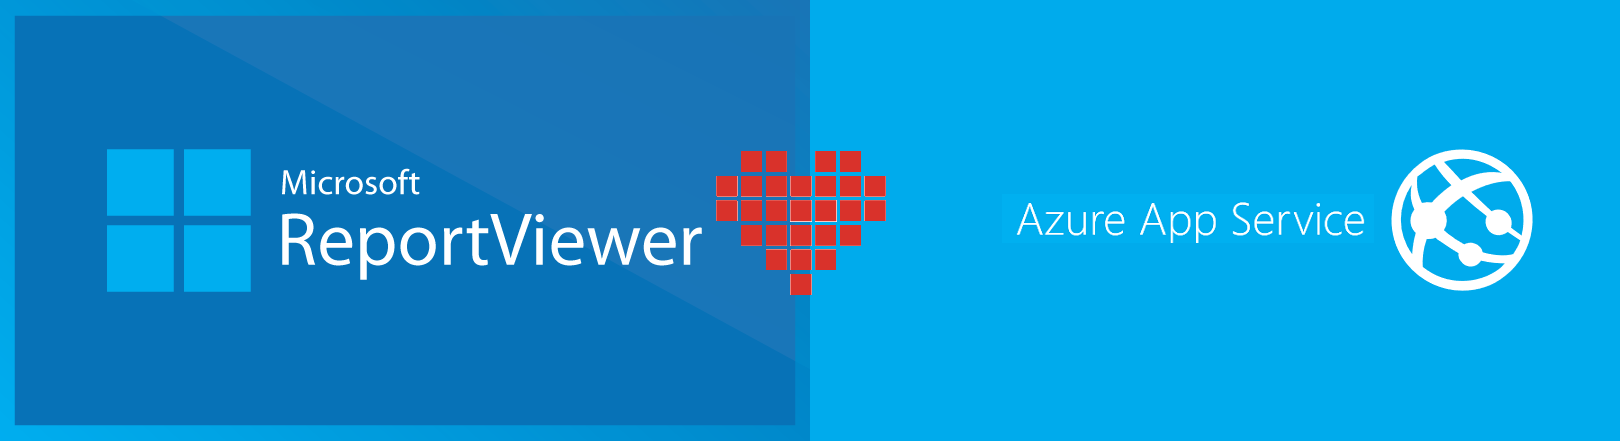 Using ReportViewer in Local Processing Mode in Azure Web Sites/Apps